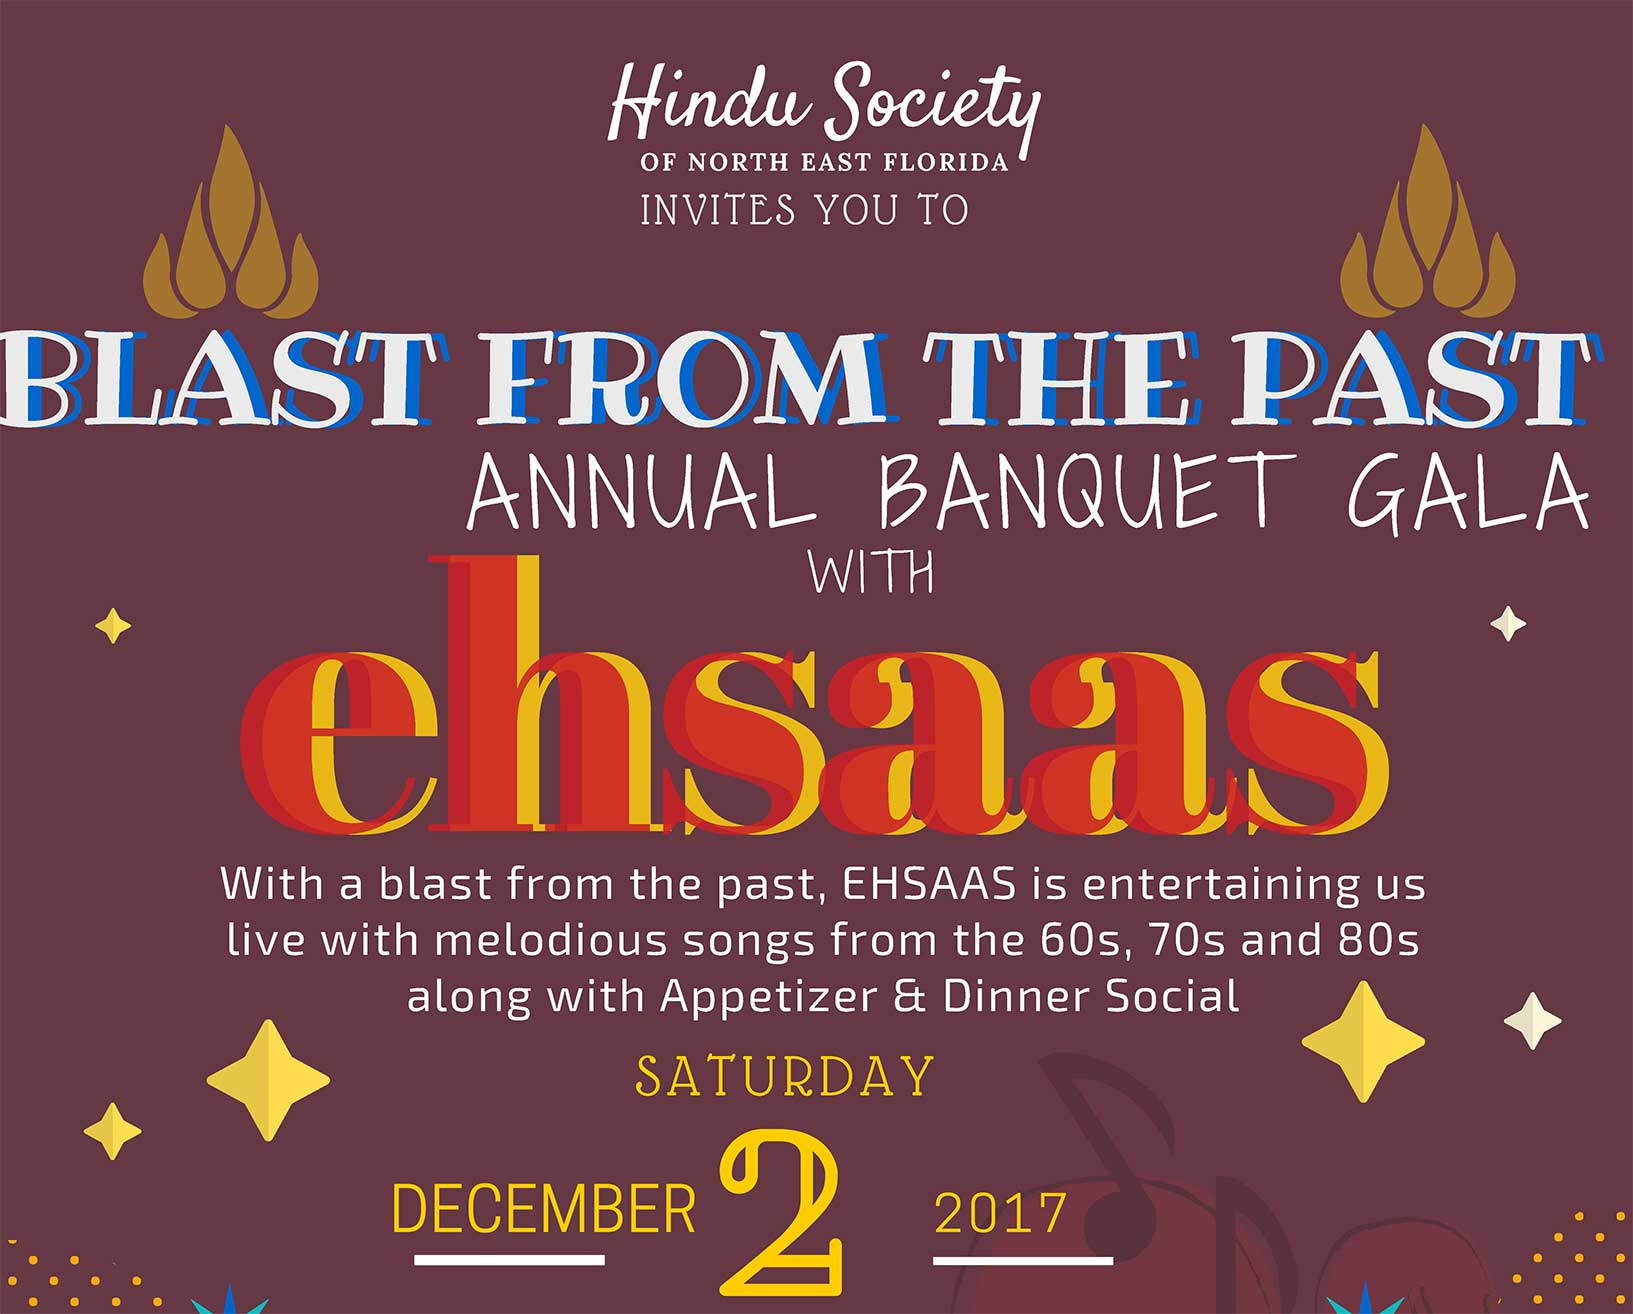 ANNUAL BANQUET GALA 2017 HSNEF SAt Dec 3 - Buy Tickets Online here. For a Blast from the Past! Saturday December 2 2017